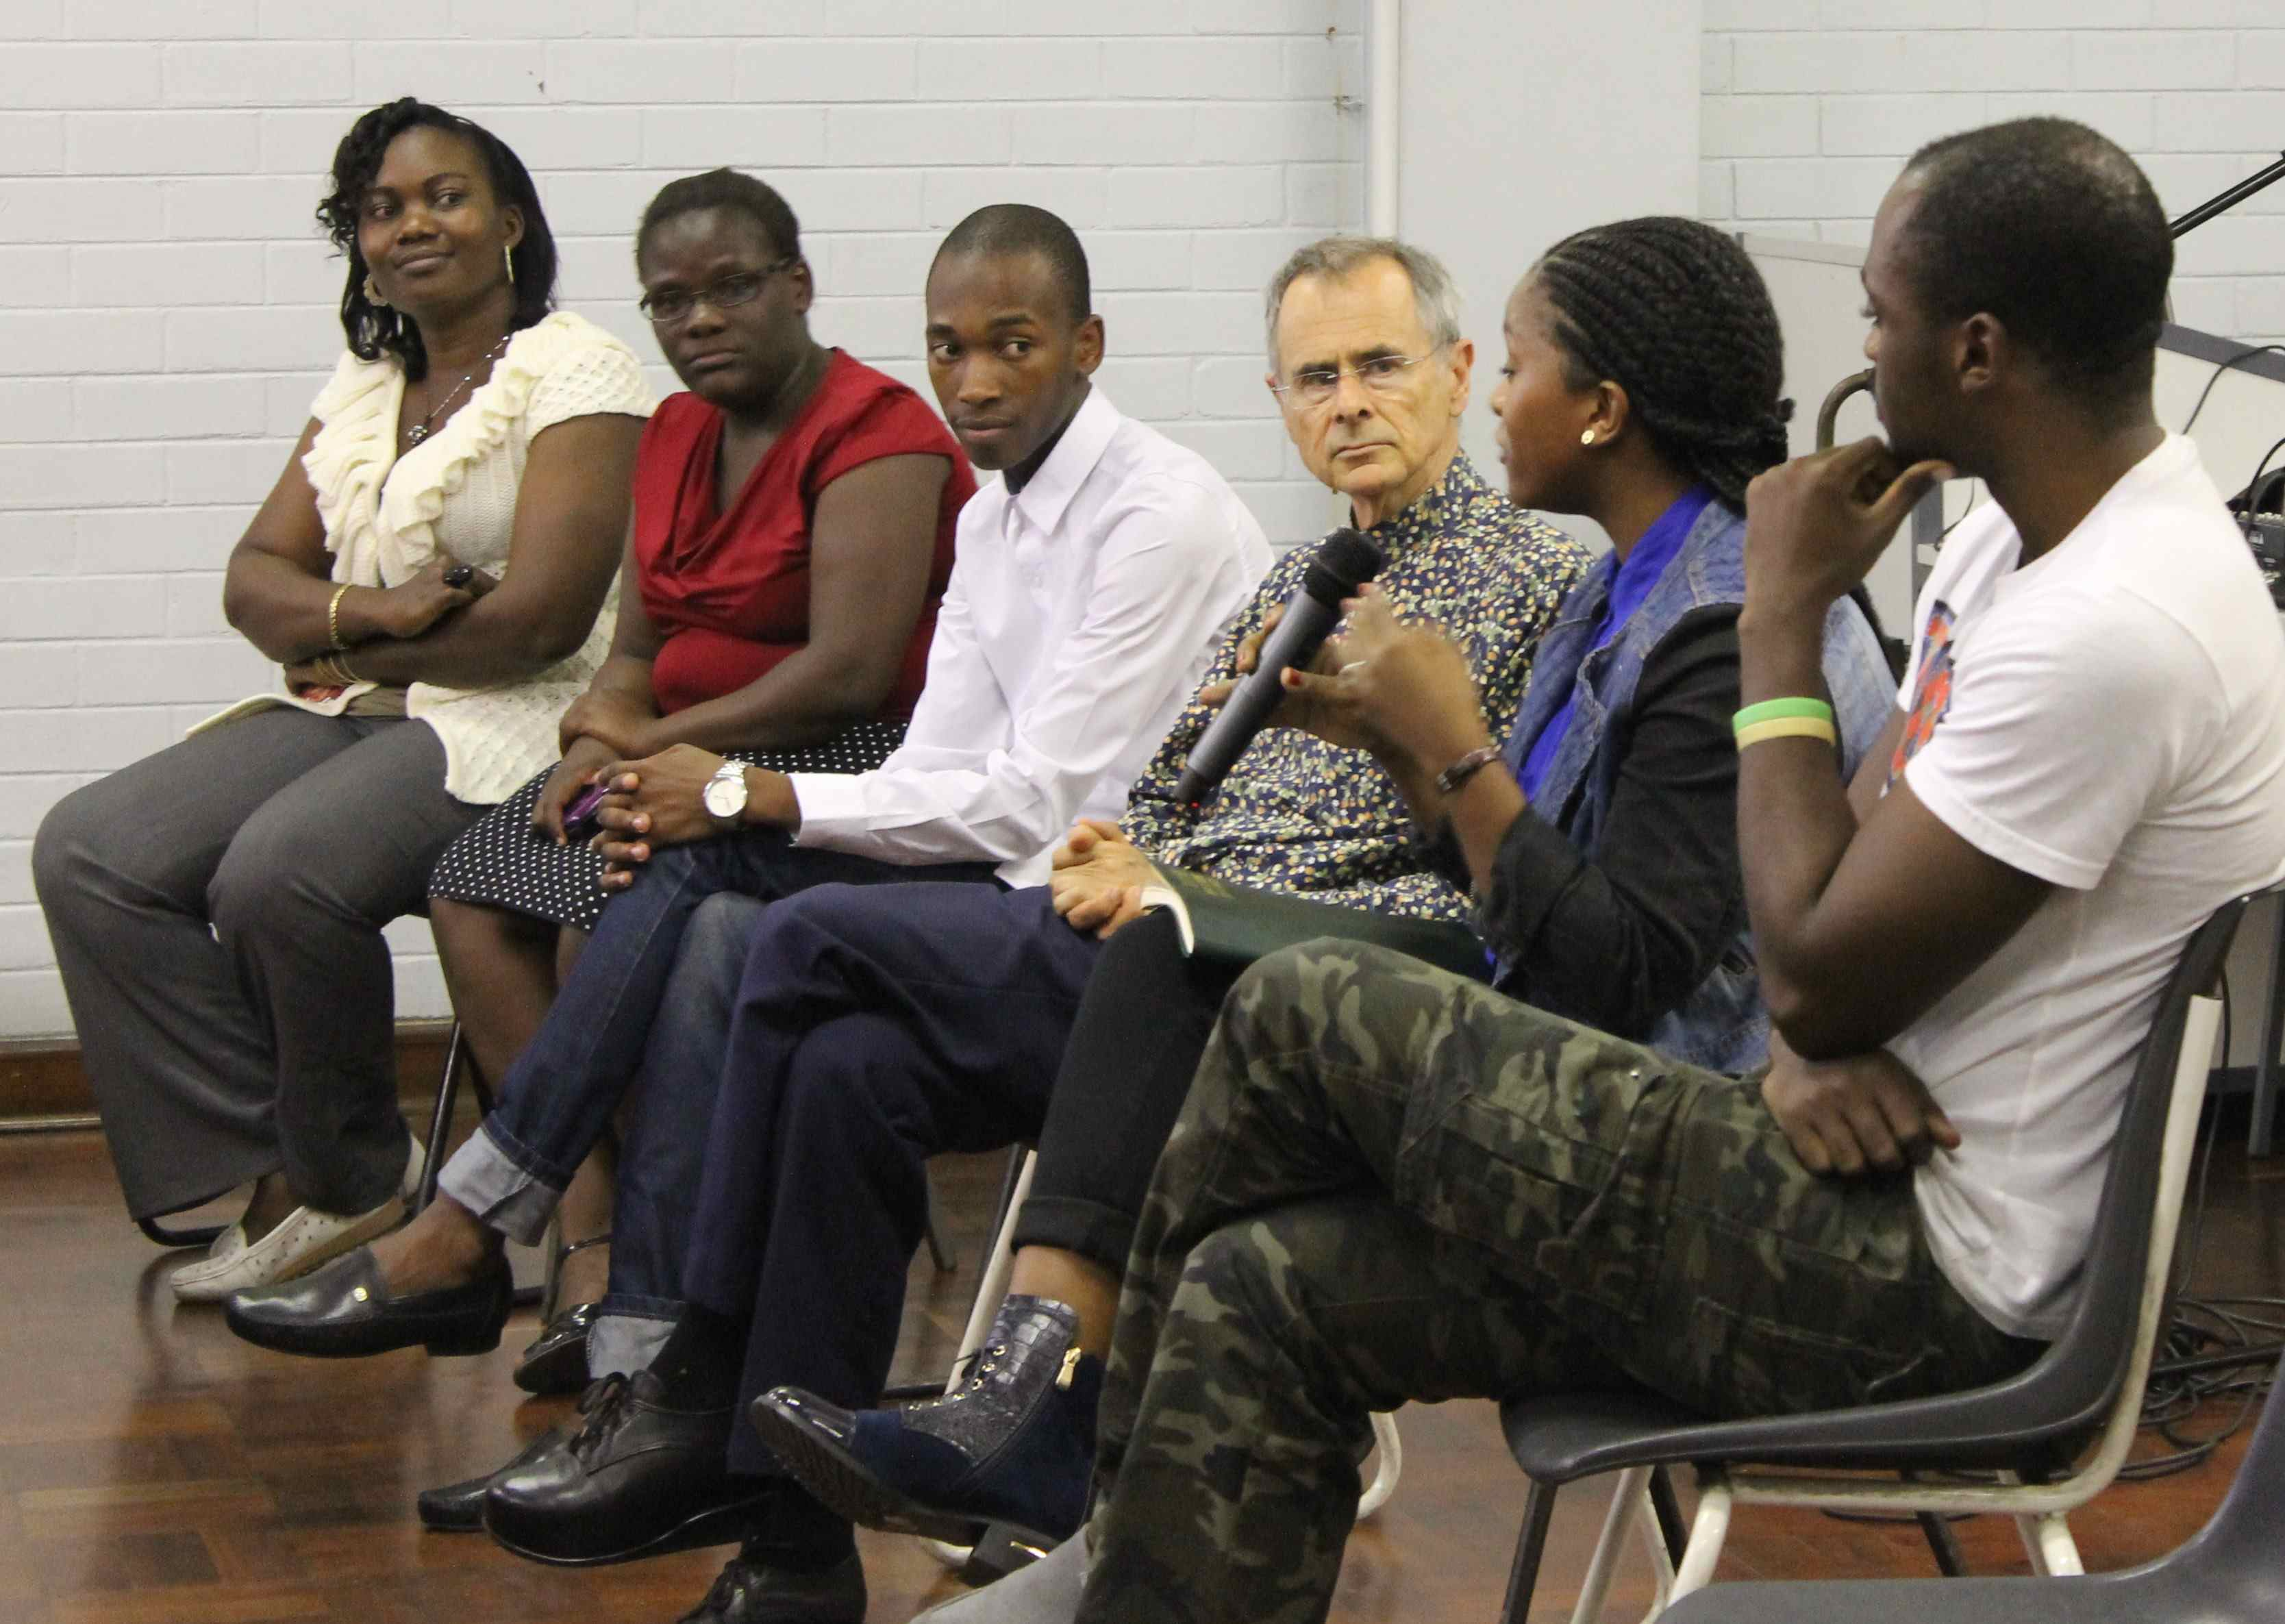 Participants on the panel